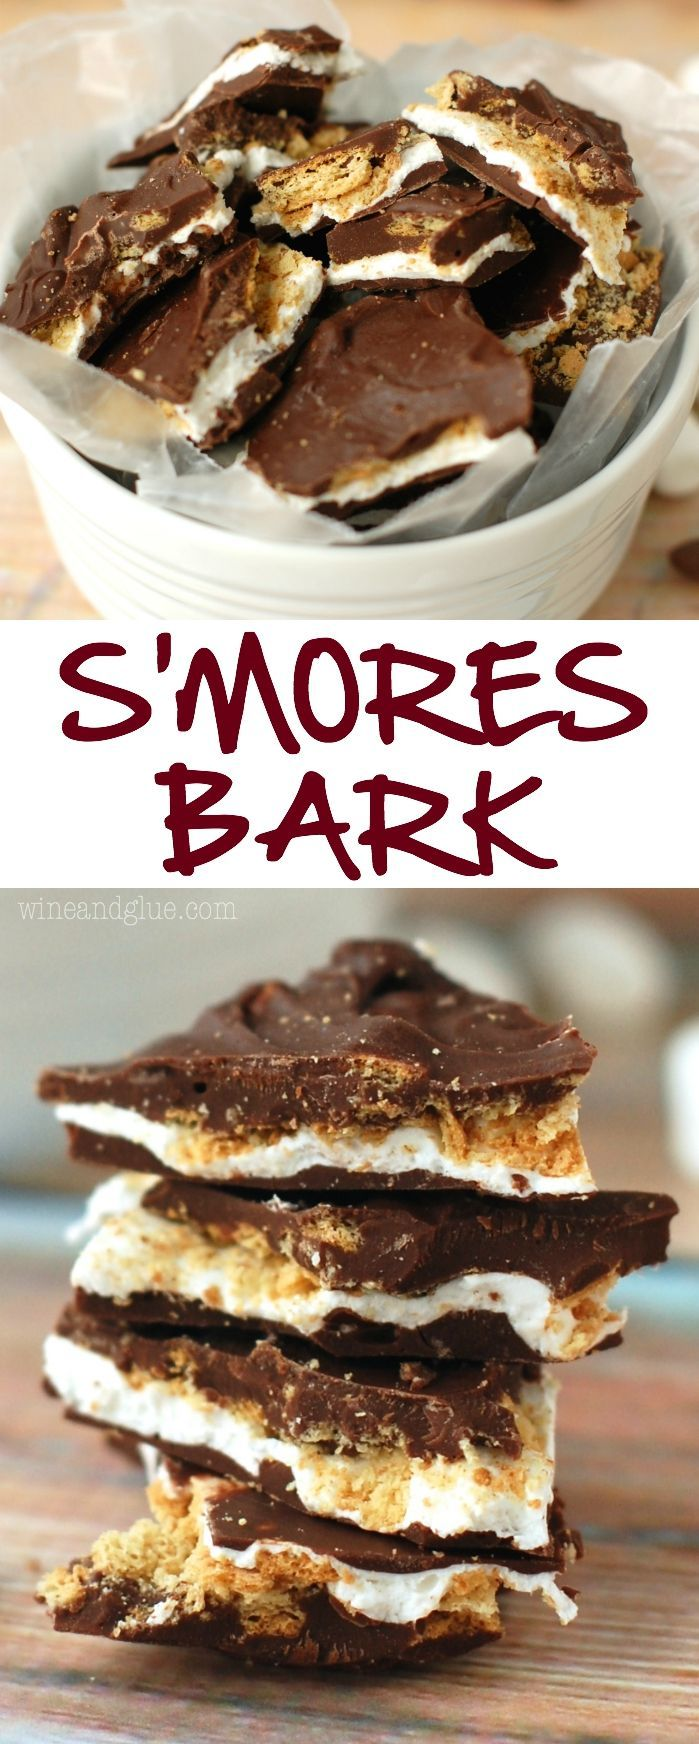 Smores Bark | Like a yummy, amazing inside out s'mores that you don't even need a camp fire for!